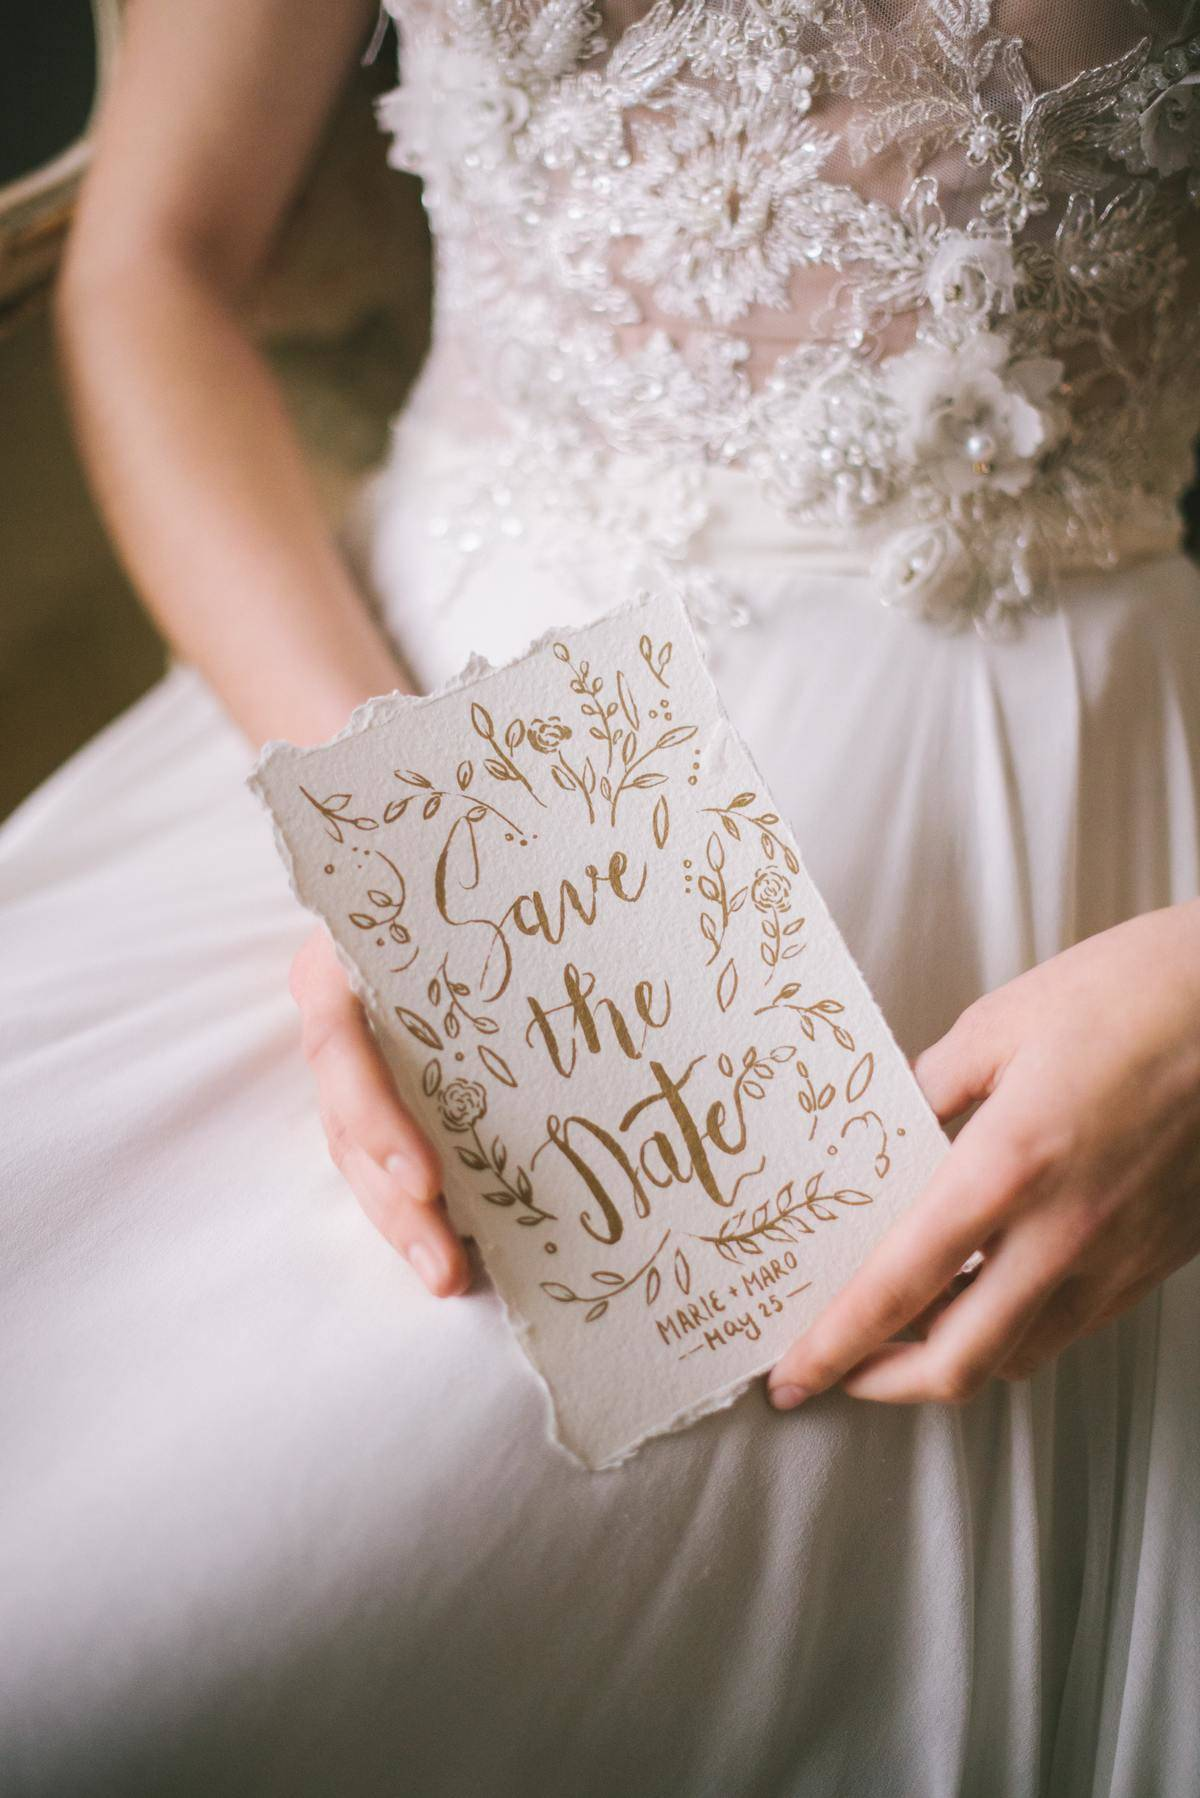 Bride holding a save the date card